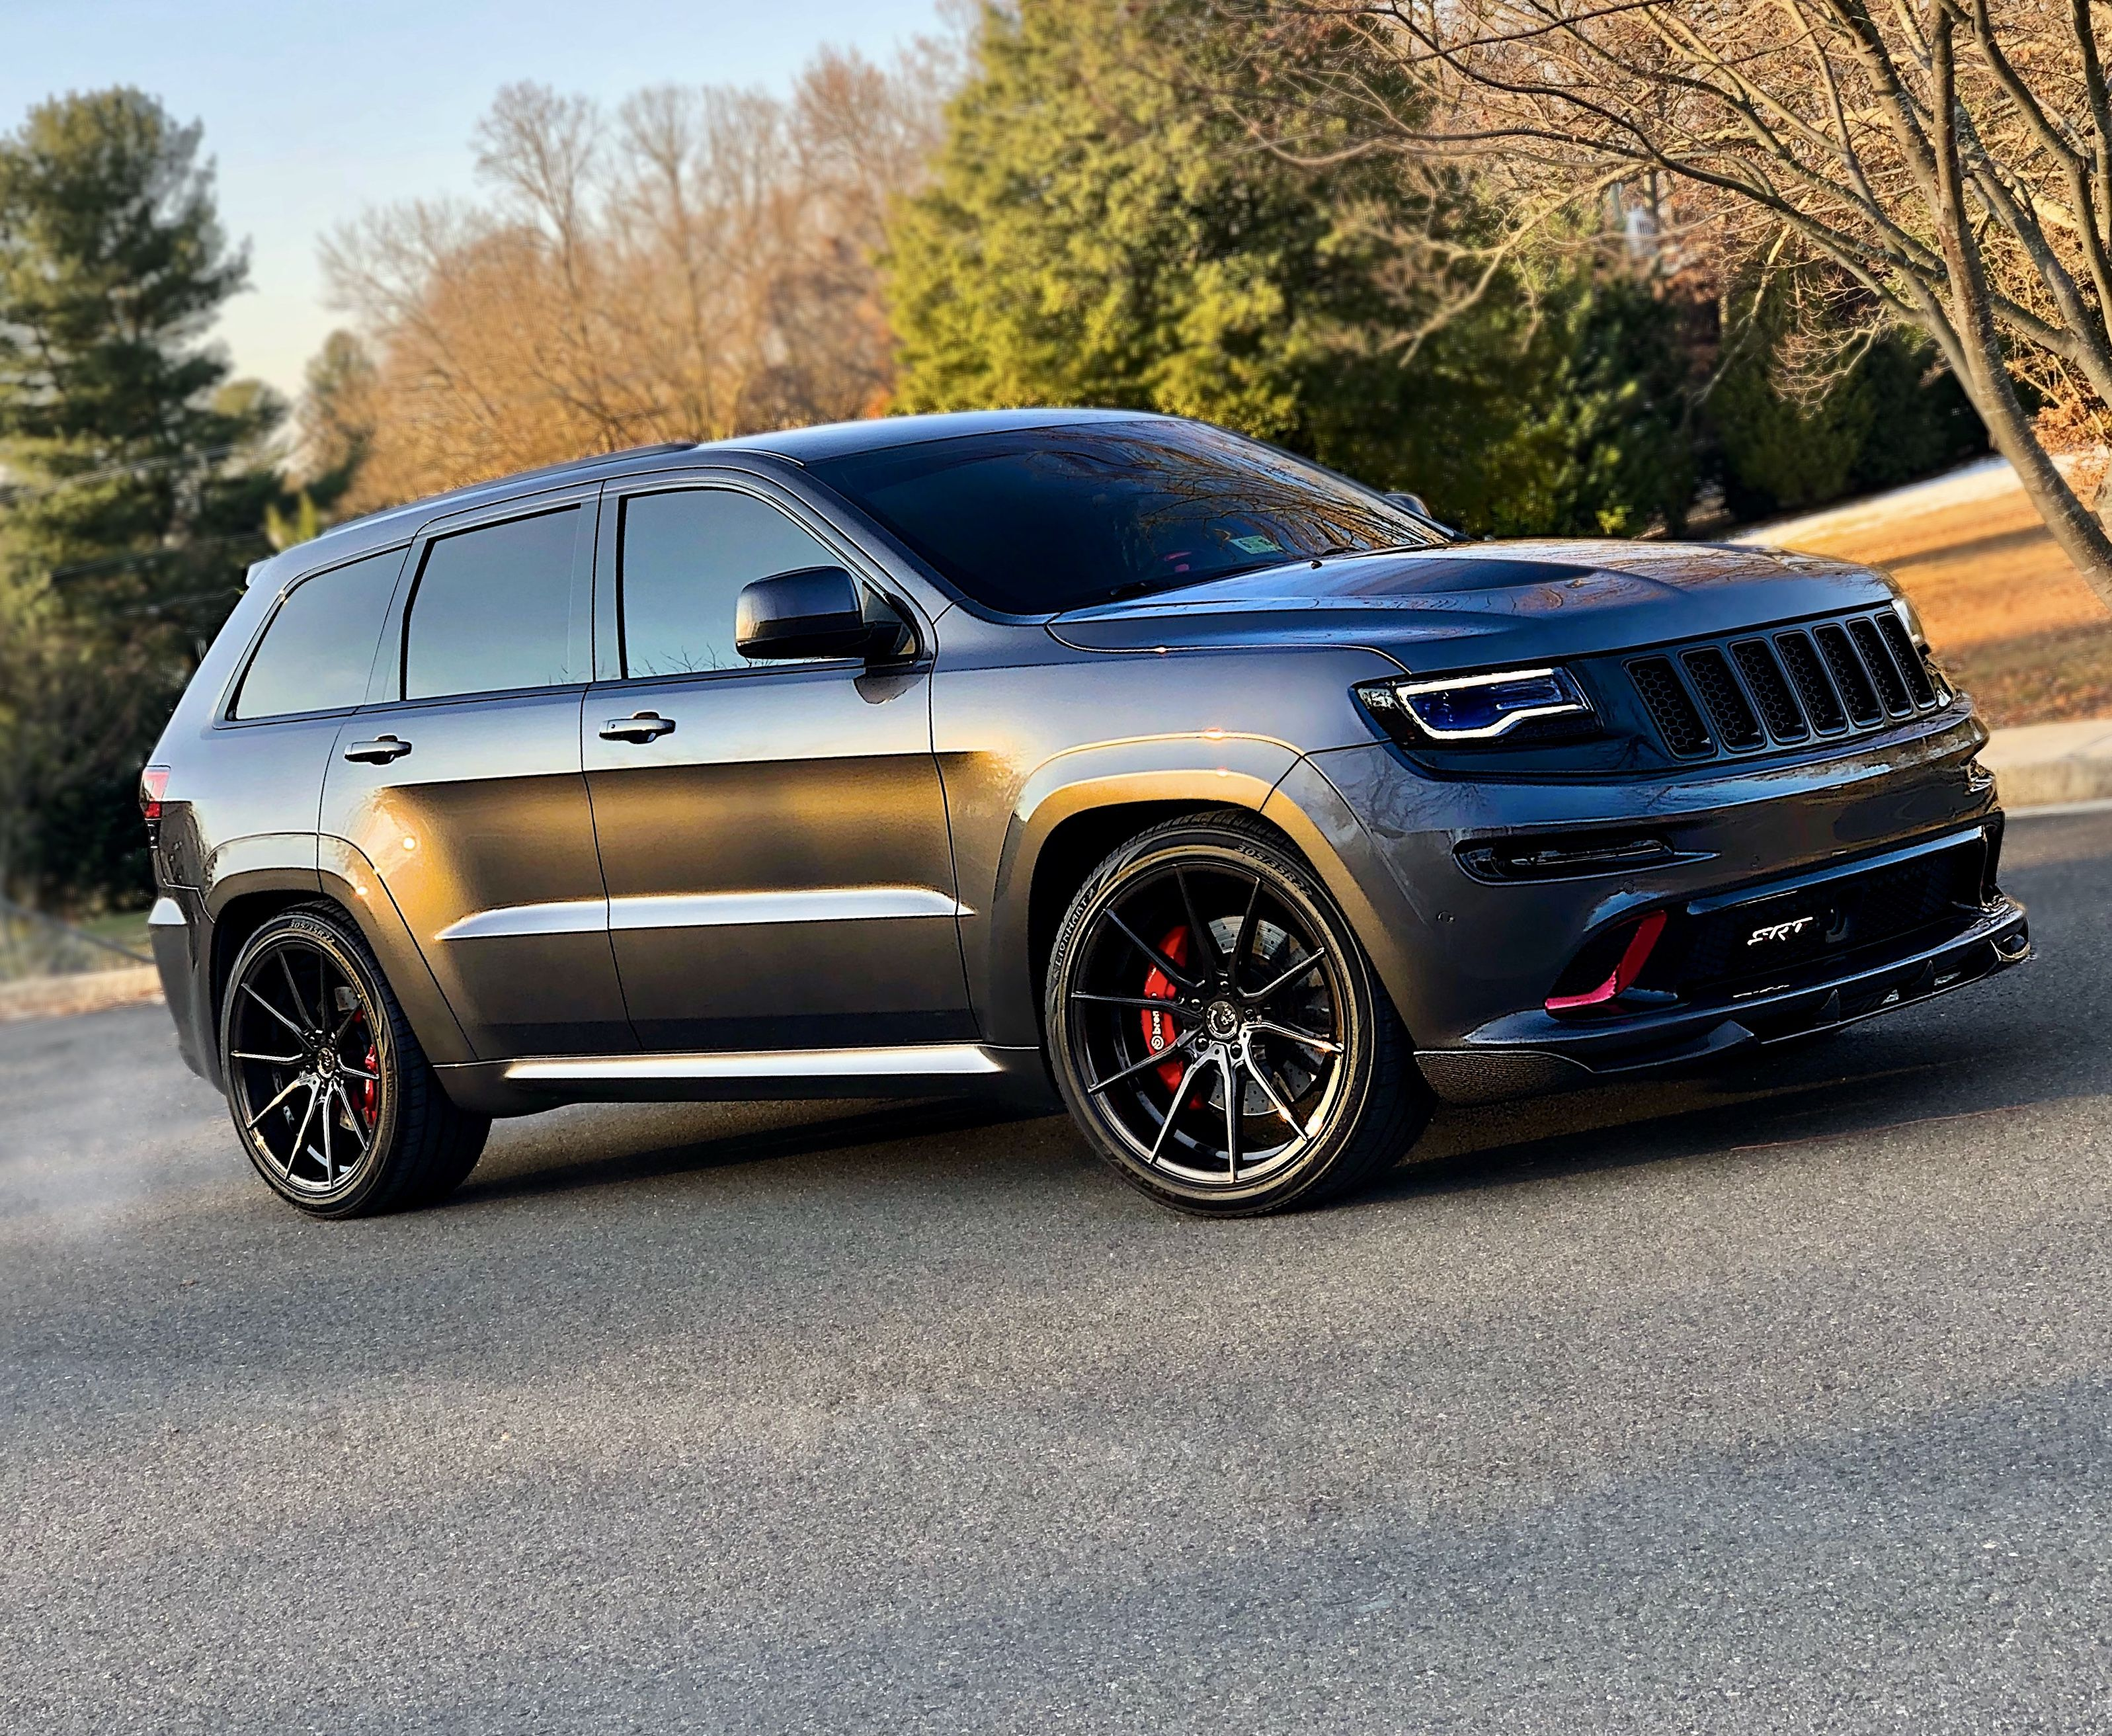 Pin By Crystal Skelton On Jeep Grand Cherokee Srt Trackhawk Jeep